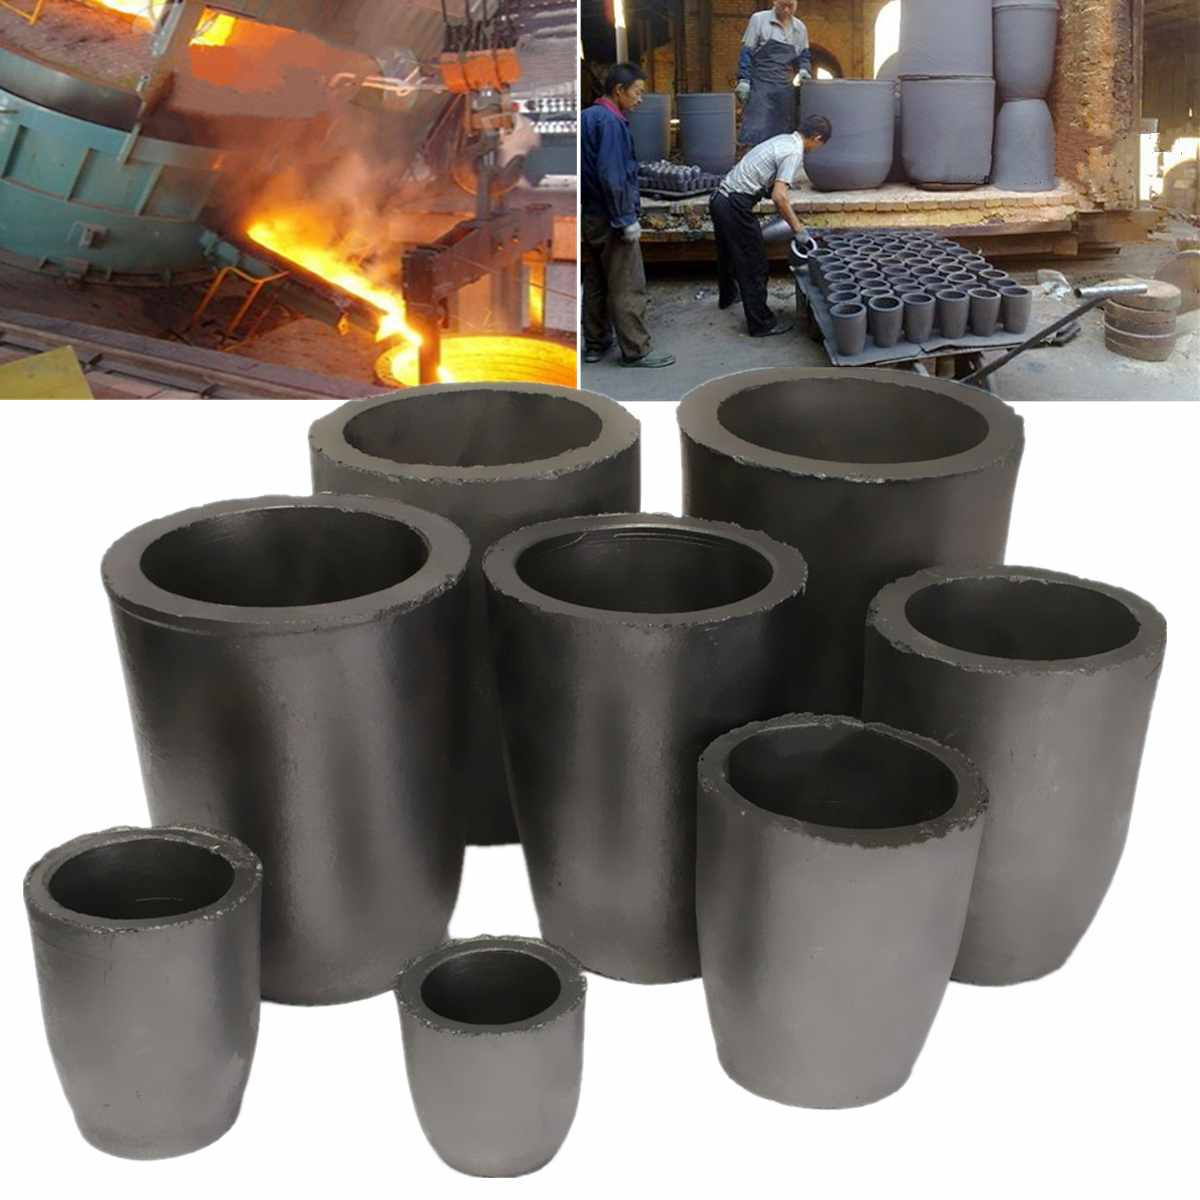 New Graphite Crucible Furnace Casting Foundry Crucible Melting Tool 1/2/4/6/8/10/12/16KgNew Graphite Crucible Furnace Casting Foundry Crucible Melting Tool 1/2/4/6/8/10/12/16Kg